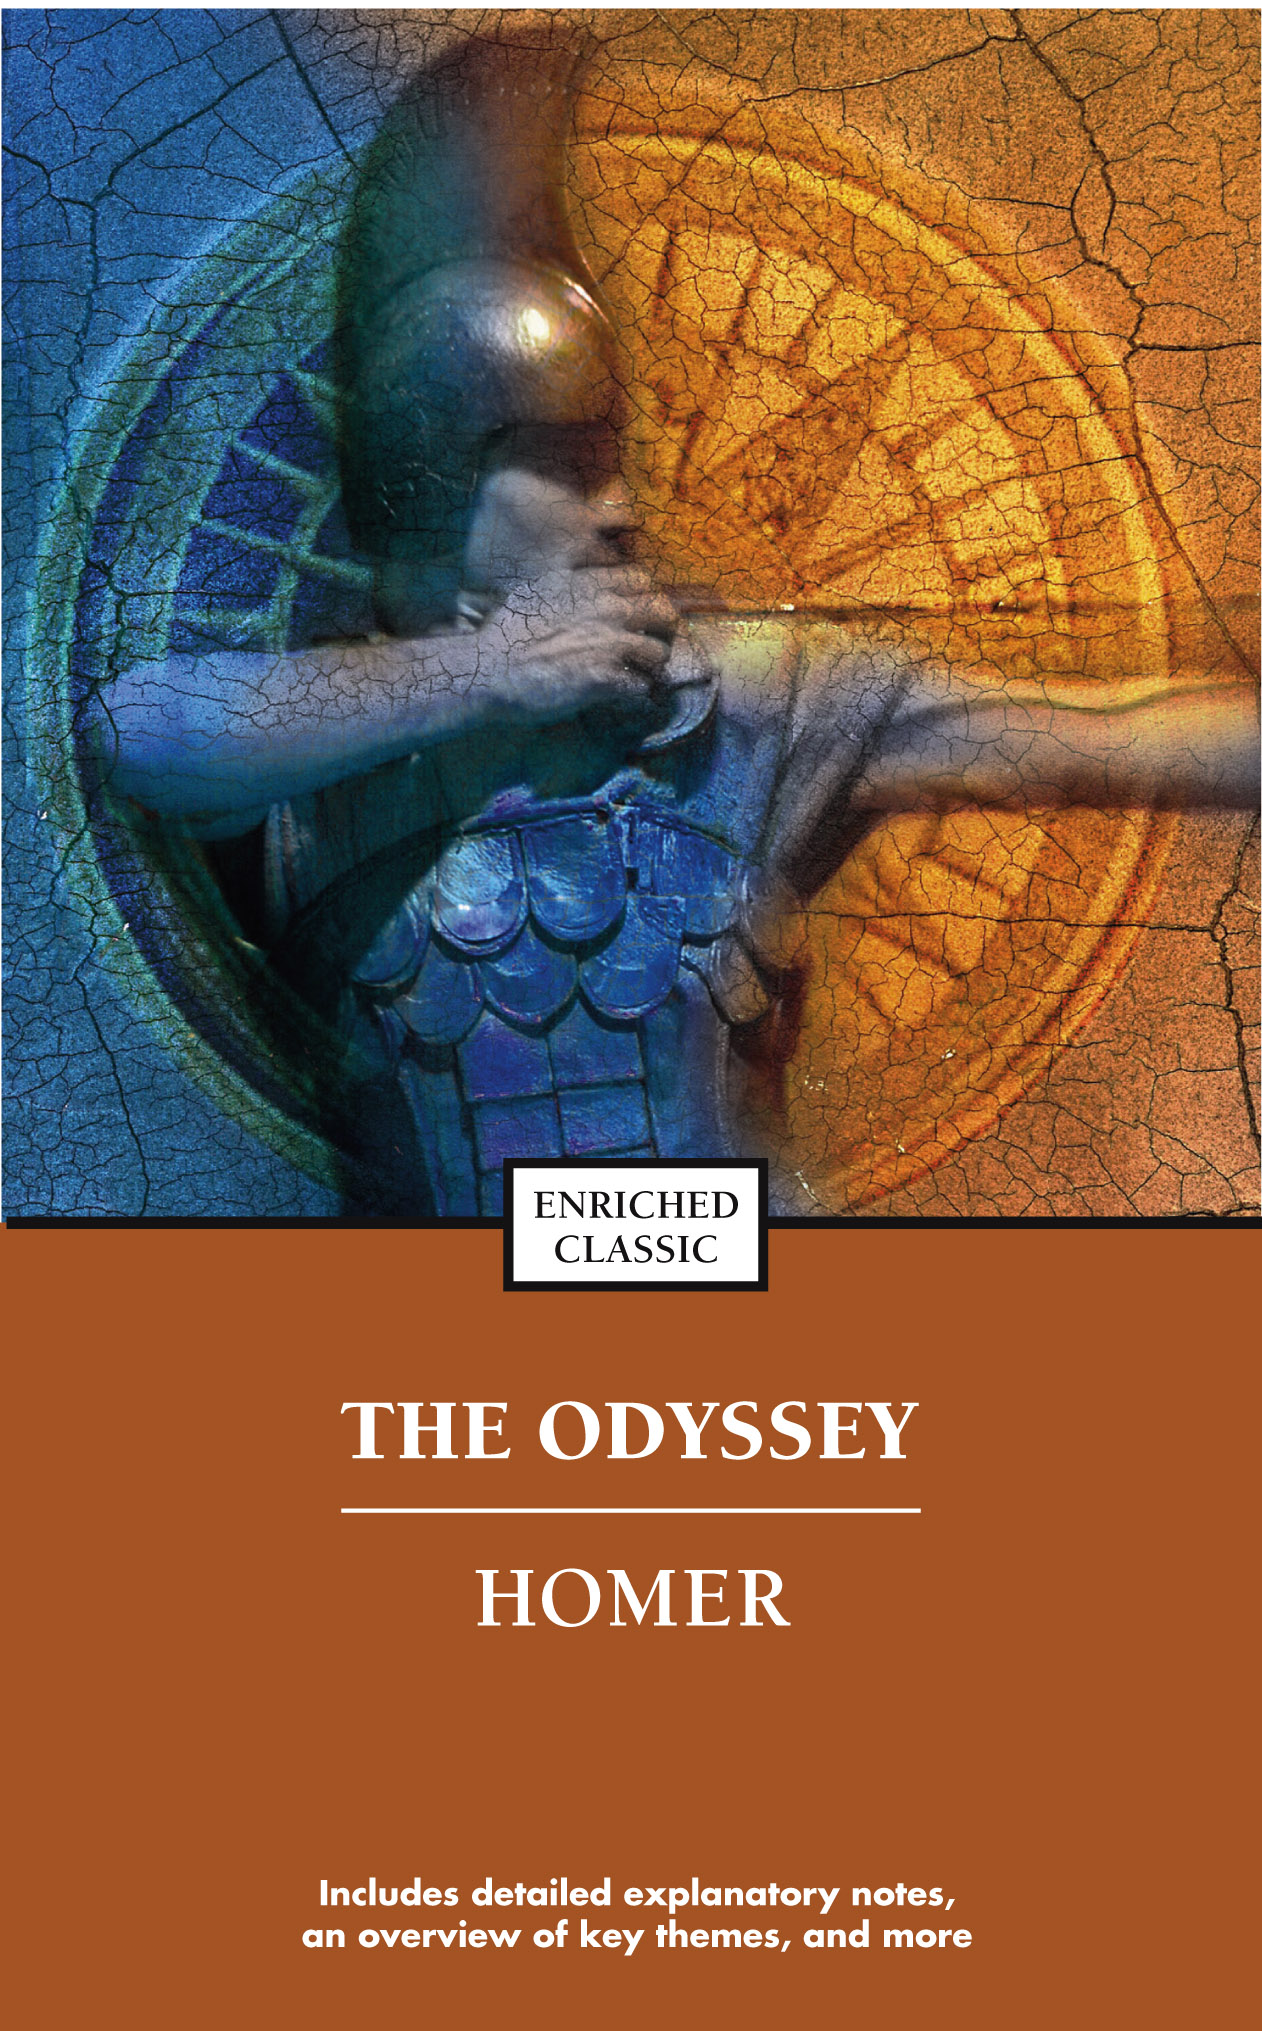 a literary analysis of the odyssey by homer and directed by andrei konchalovsky The russian theatre and film director andrei konchalovsky is an elder brother of nikita mikhalkov, born august, 20, 1937 1997 the odyssey (tv series) (teleplay - 2 episodes) 1989 tango & cash (as andrei konchalovsky, directed by) 1989 homer and eddie (as andrei konchalovsky.